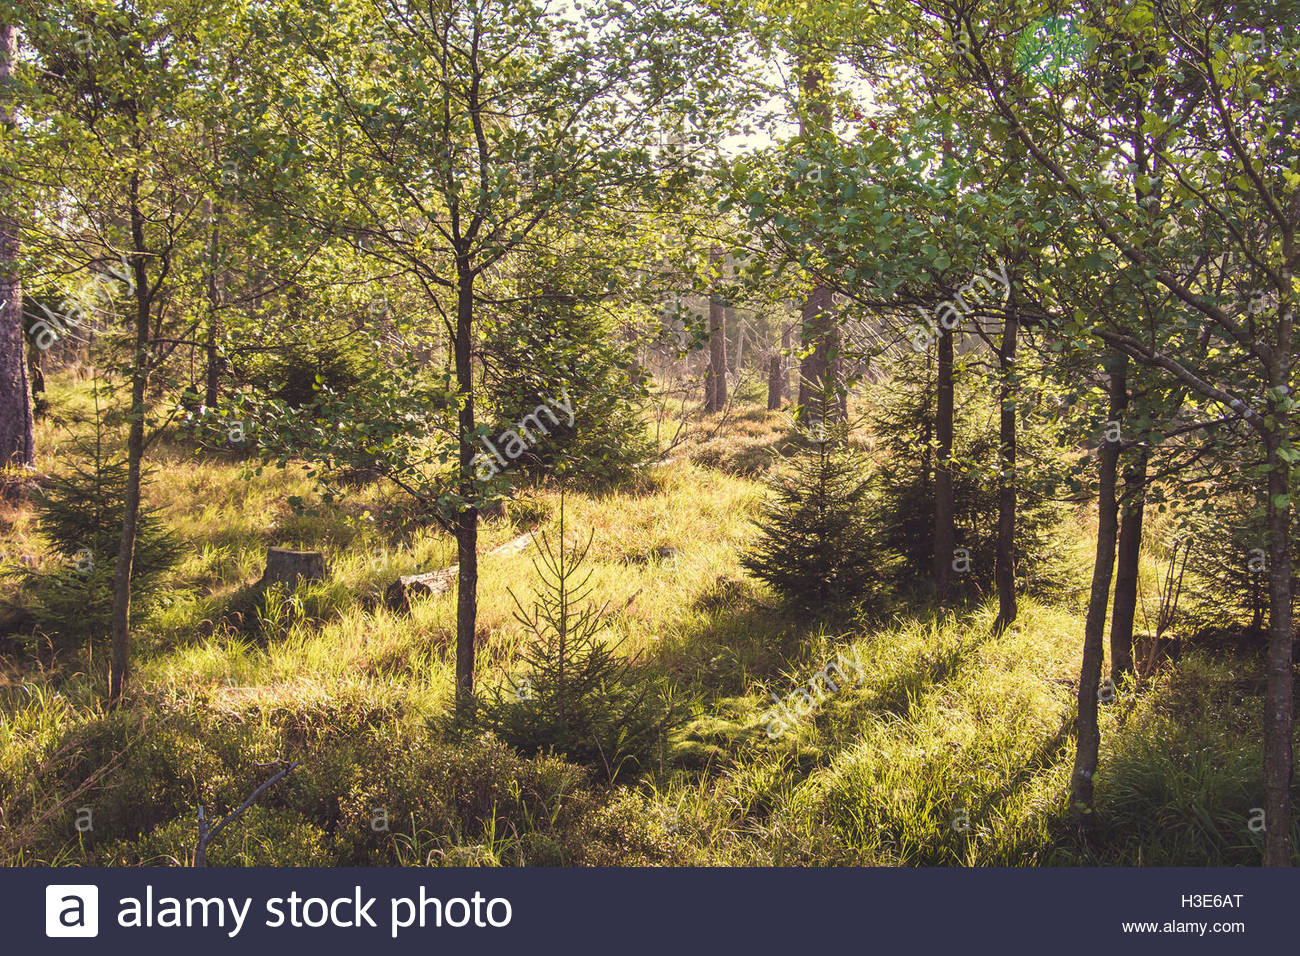 Travel destination Germany sustainable forest nature landscape forestry woodland landscape green forest sunlight - Stock Image